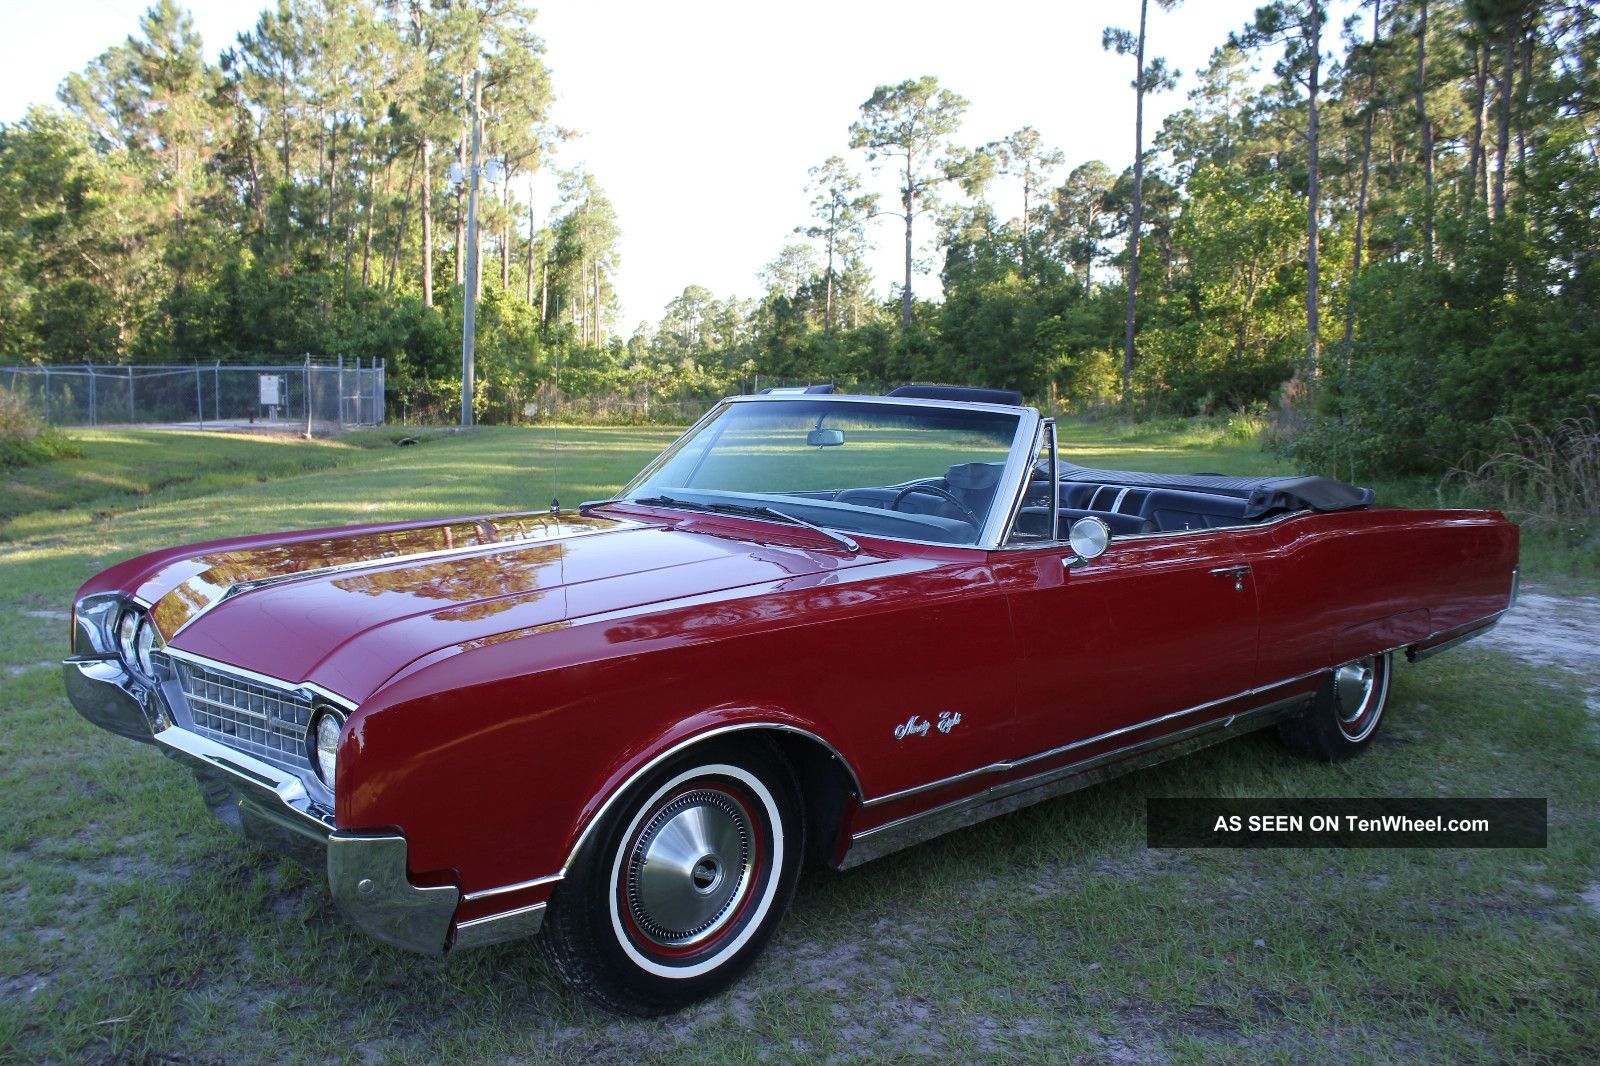 1966 Oldsmobile Ninety - Eight Rocket 98 Convertible 425 Make Offer_load 77+ Pict. Ninety-Eight photo